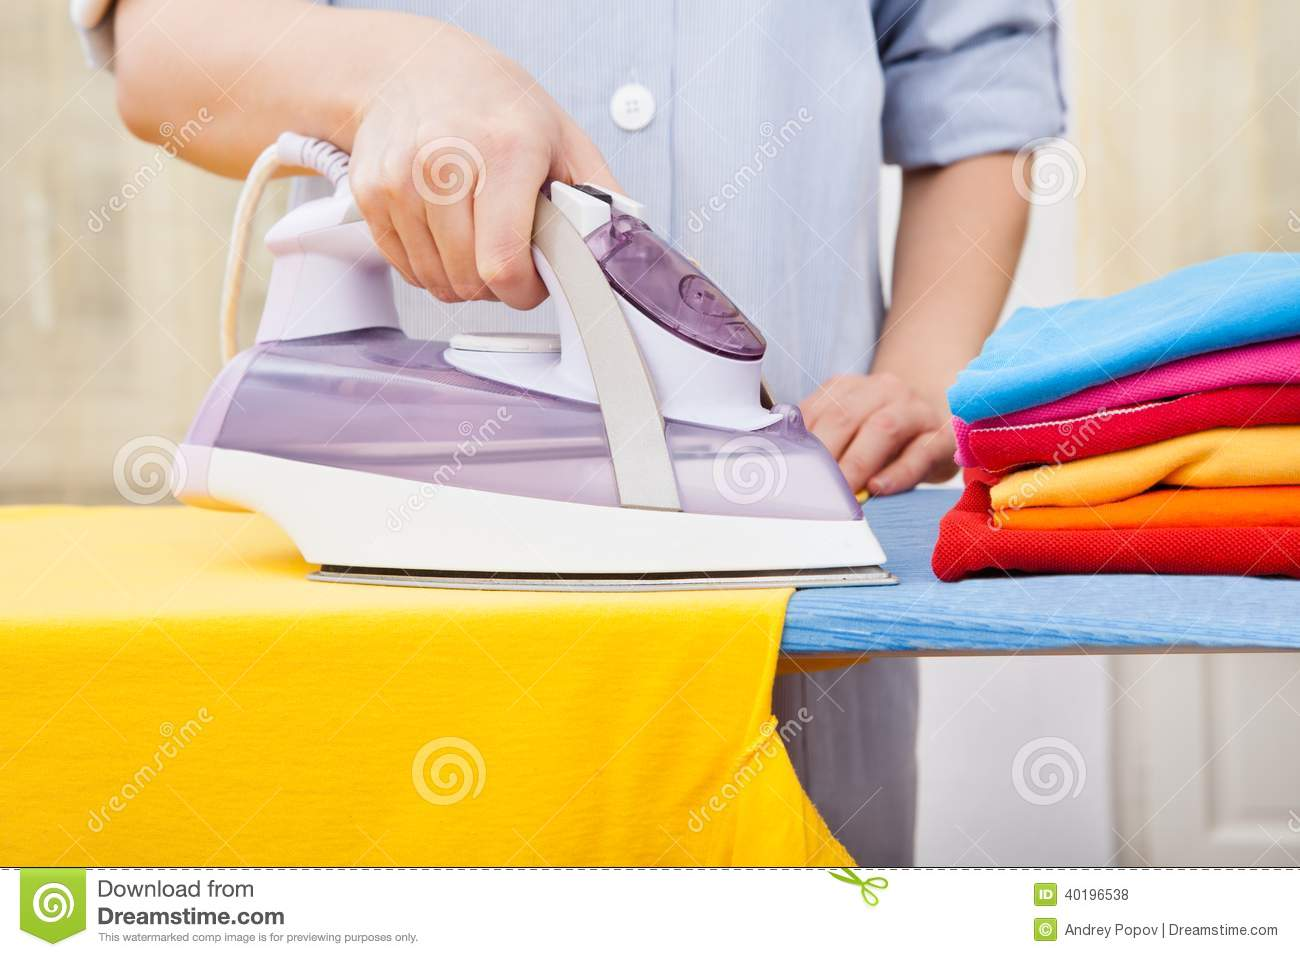 White Press Cloth For Ironing